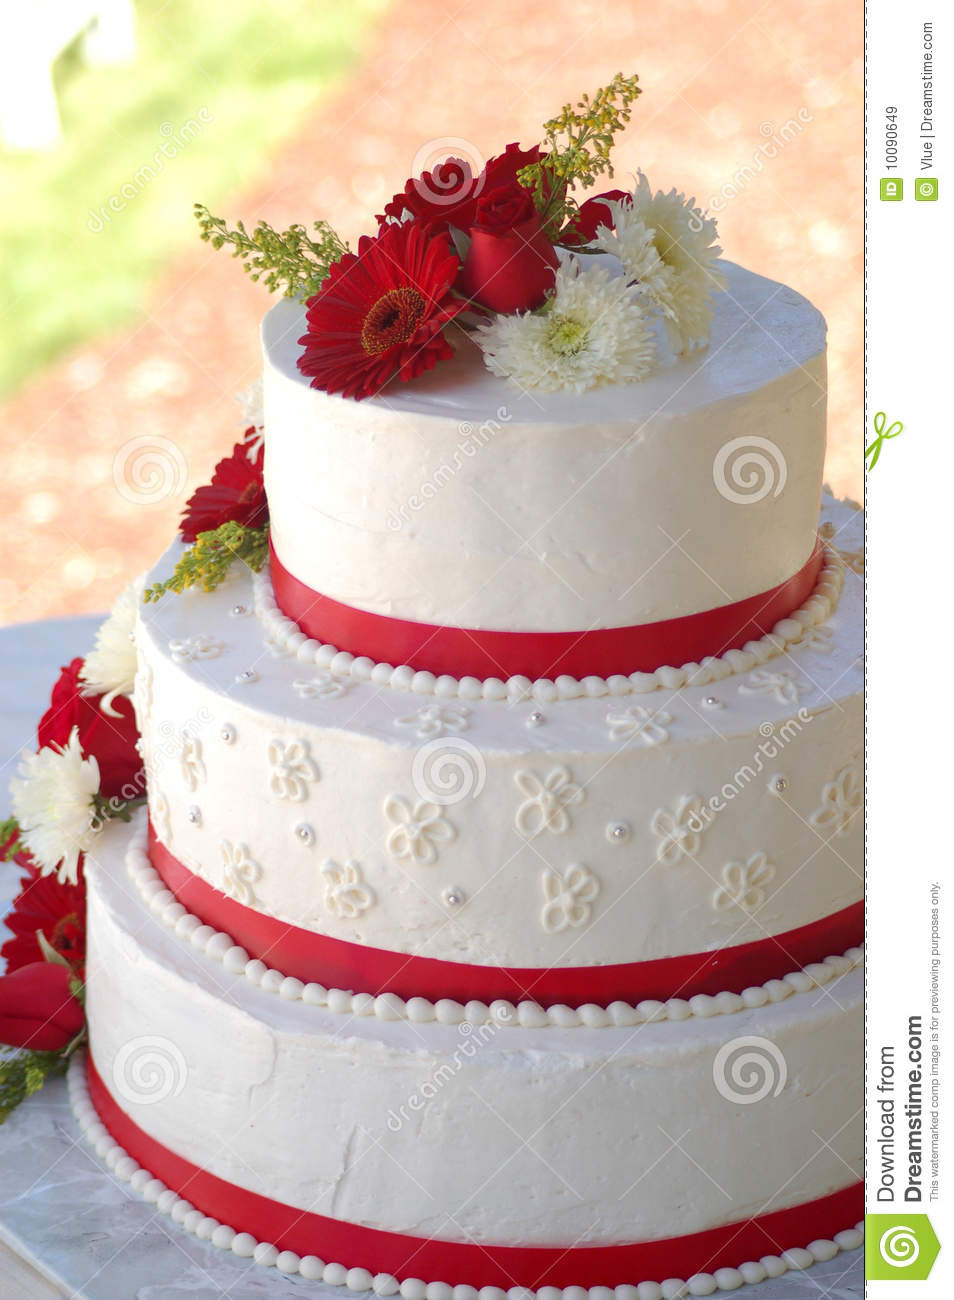 Wedding cake with red stripes and flowers stock image image of wedding cake with red stripes and flowers mightylinksfo Image collections